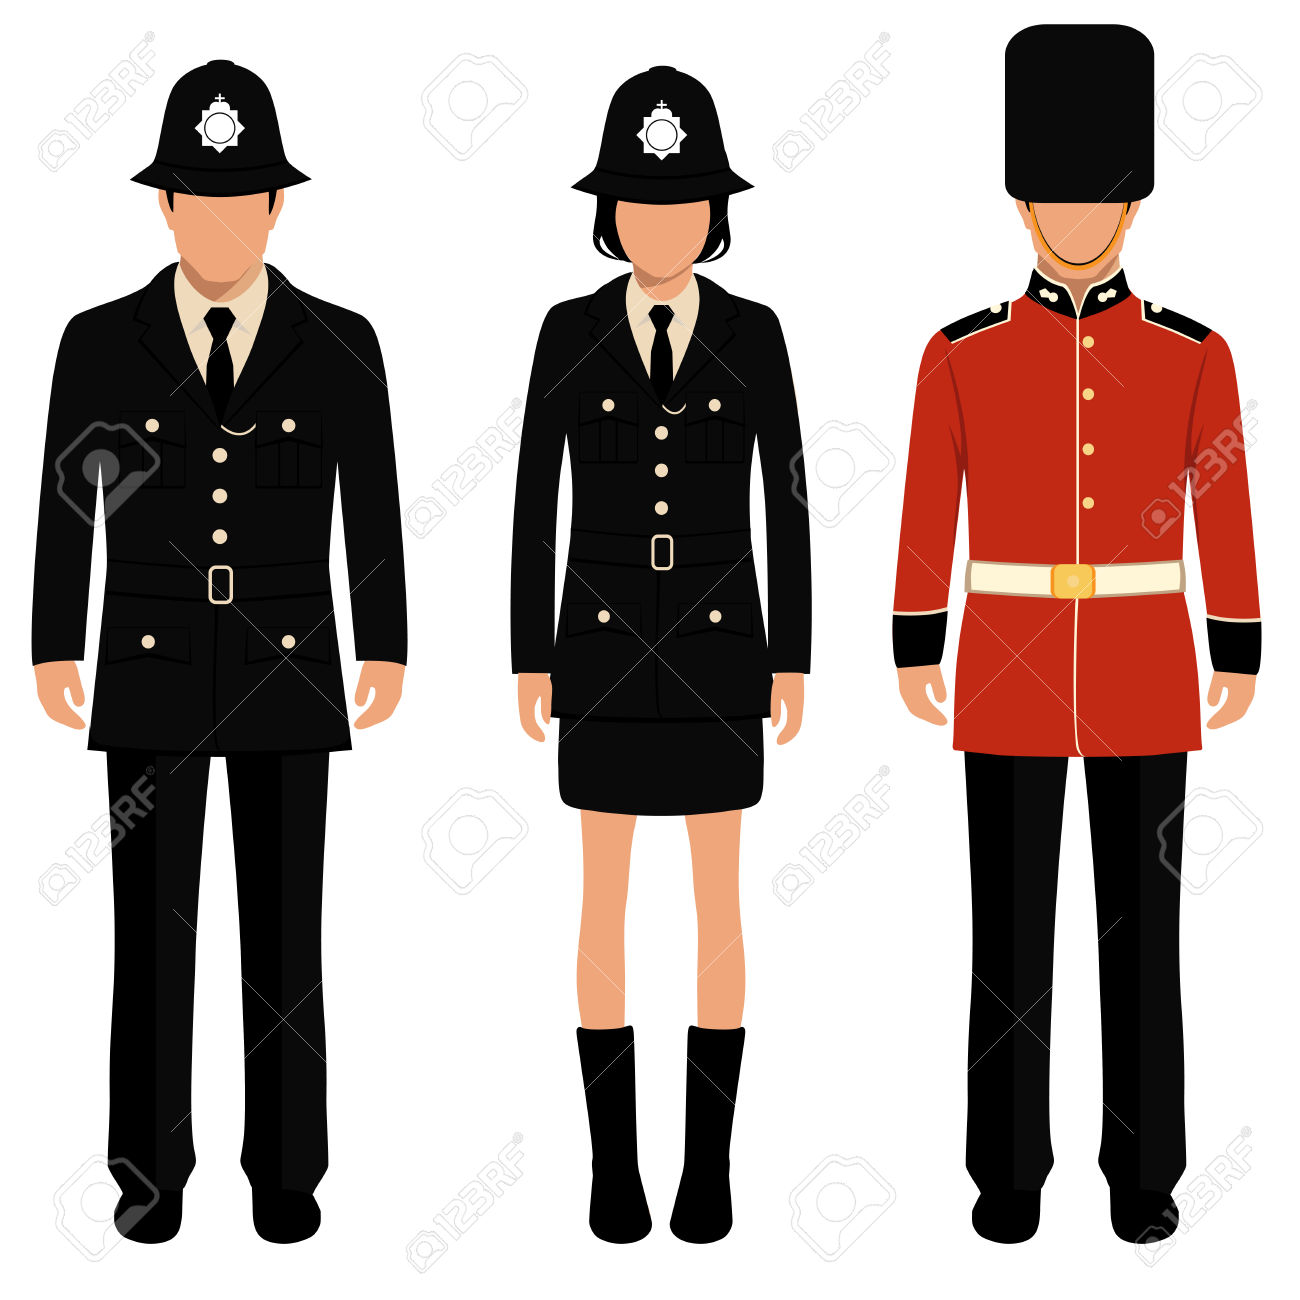 Police clipart uk vector freeuse library Police Clipart Uk Clip art of Police Clipart #3159 — Clipartwork vector freeuse library